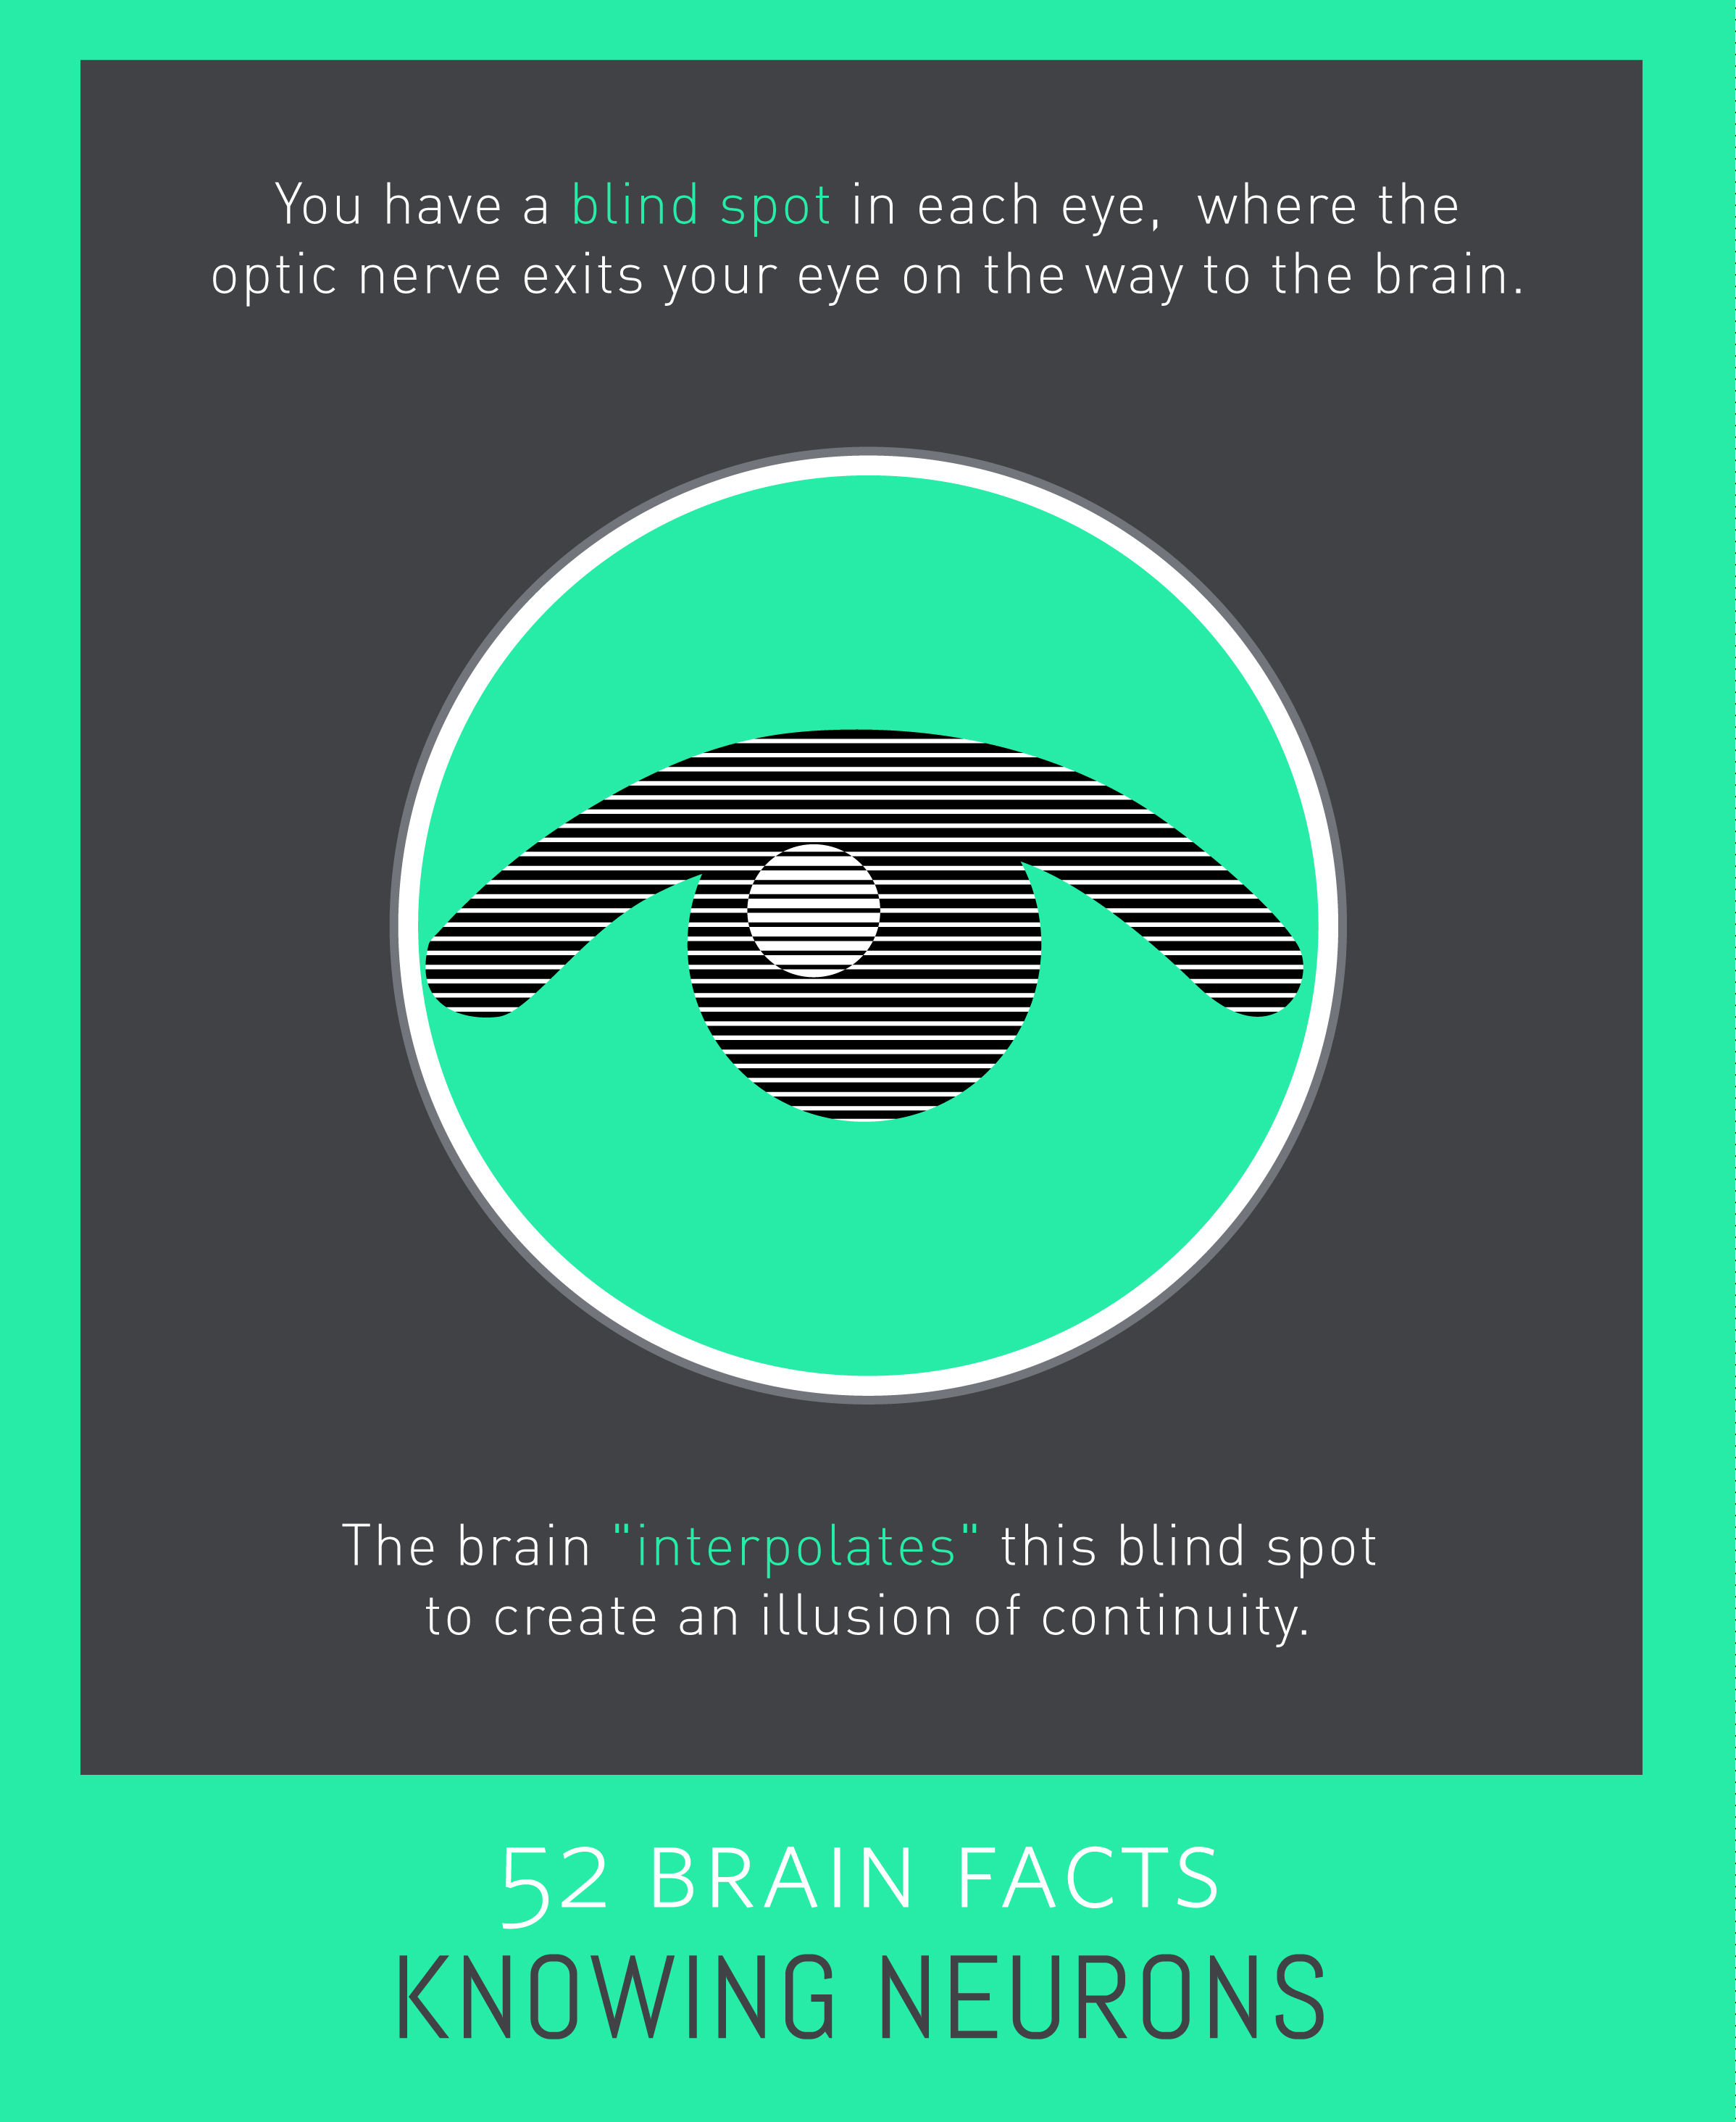 Myth or Fact? Blind spots do not occur in healthy eyes.